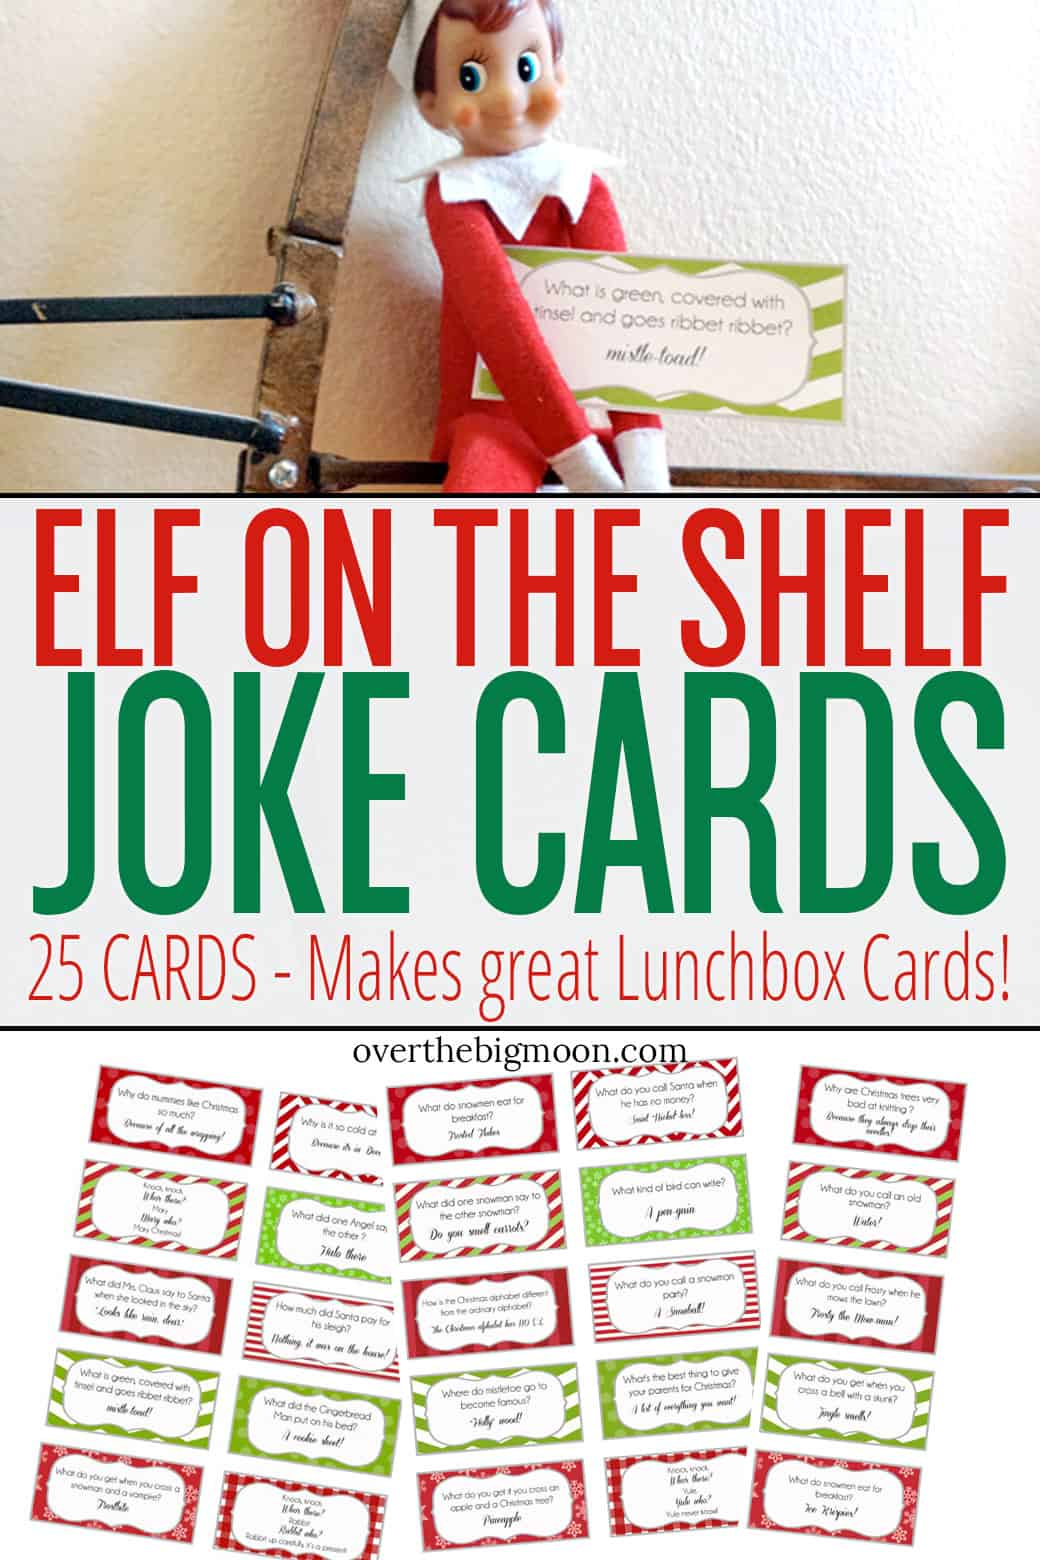 Elf on the Shelf Printable Joke Cards - Over the Big Moon